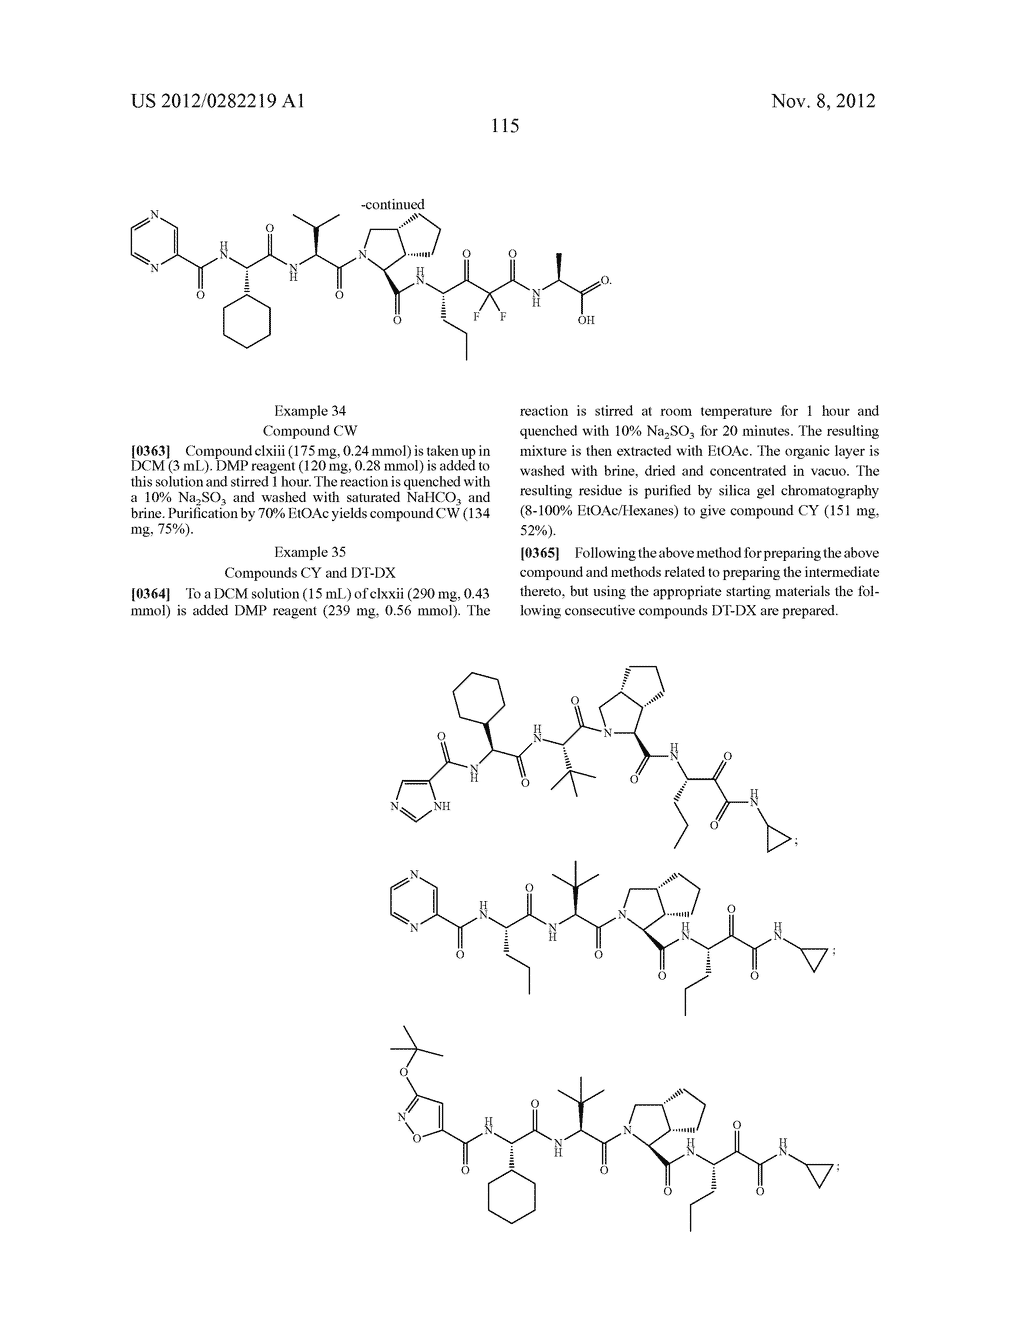 PEPTIDOMIMETIC PROTEASE INHIBITORS - diagram, schematic, and image 130